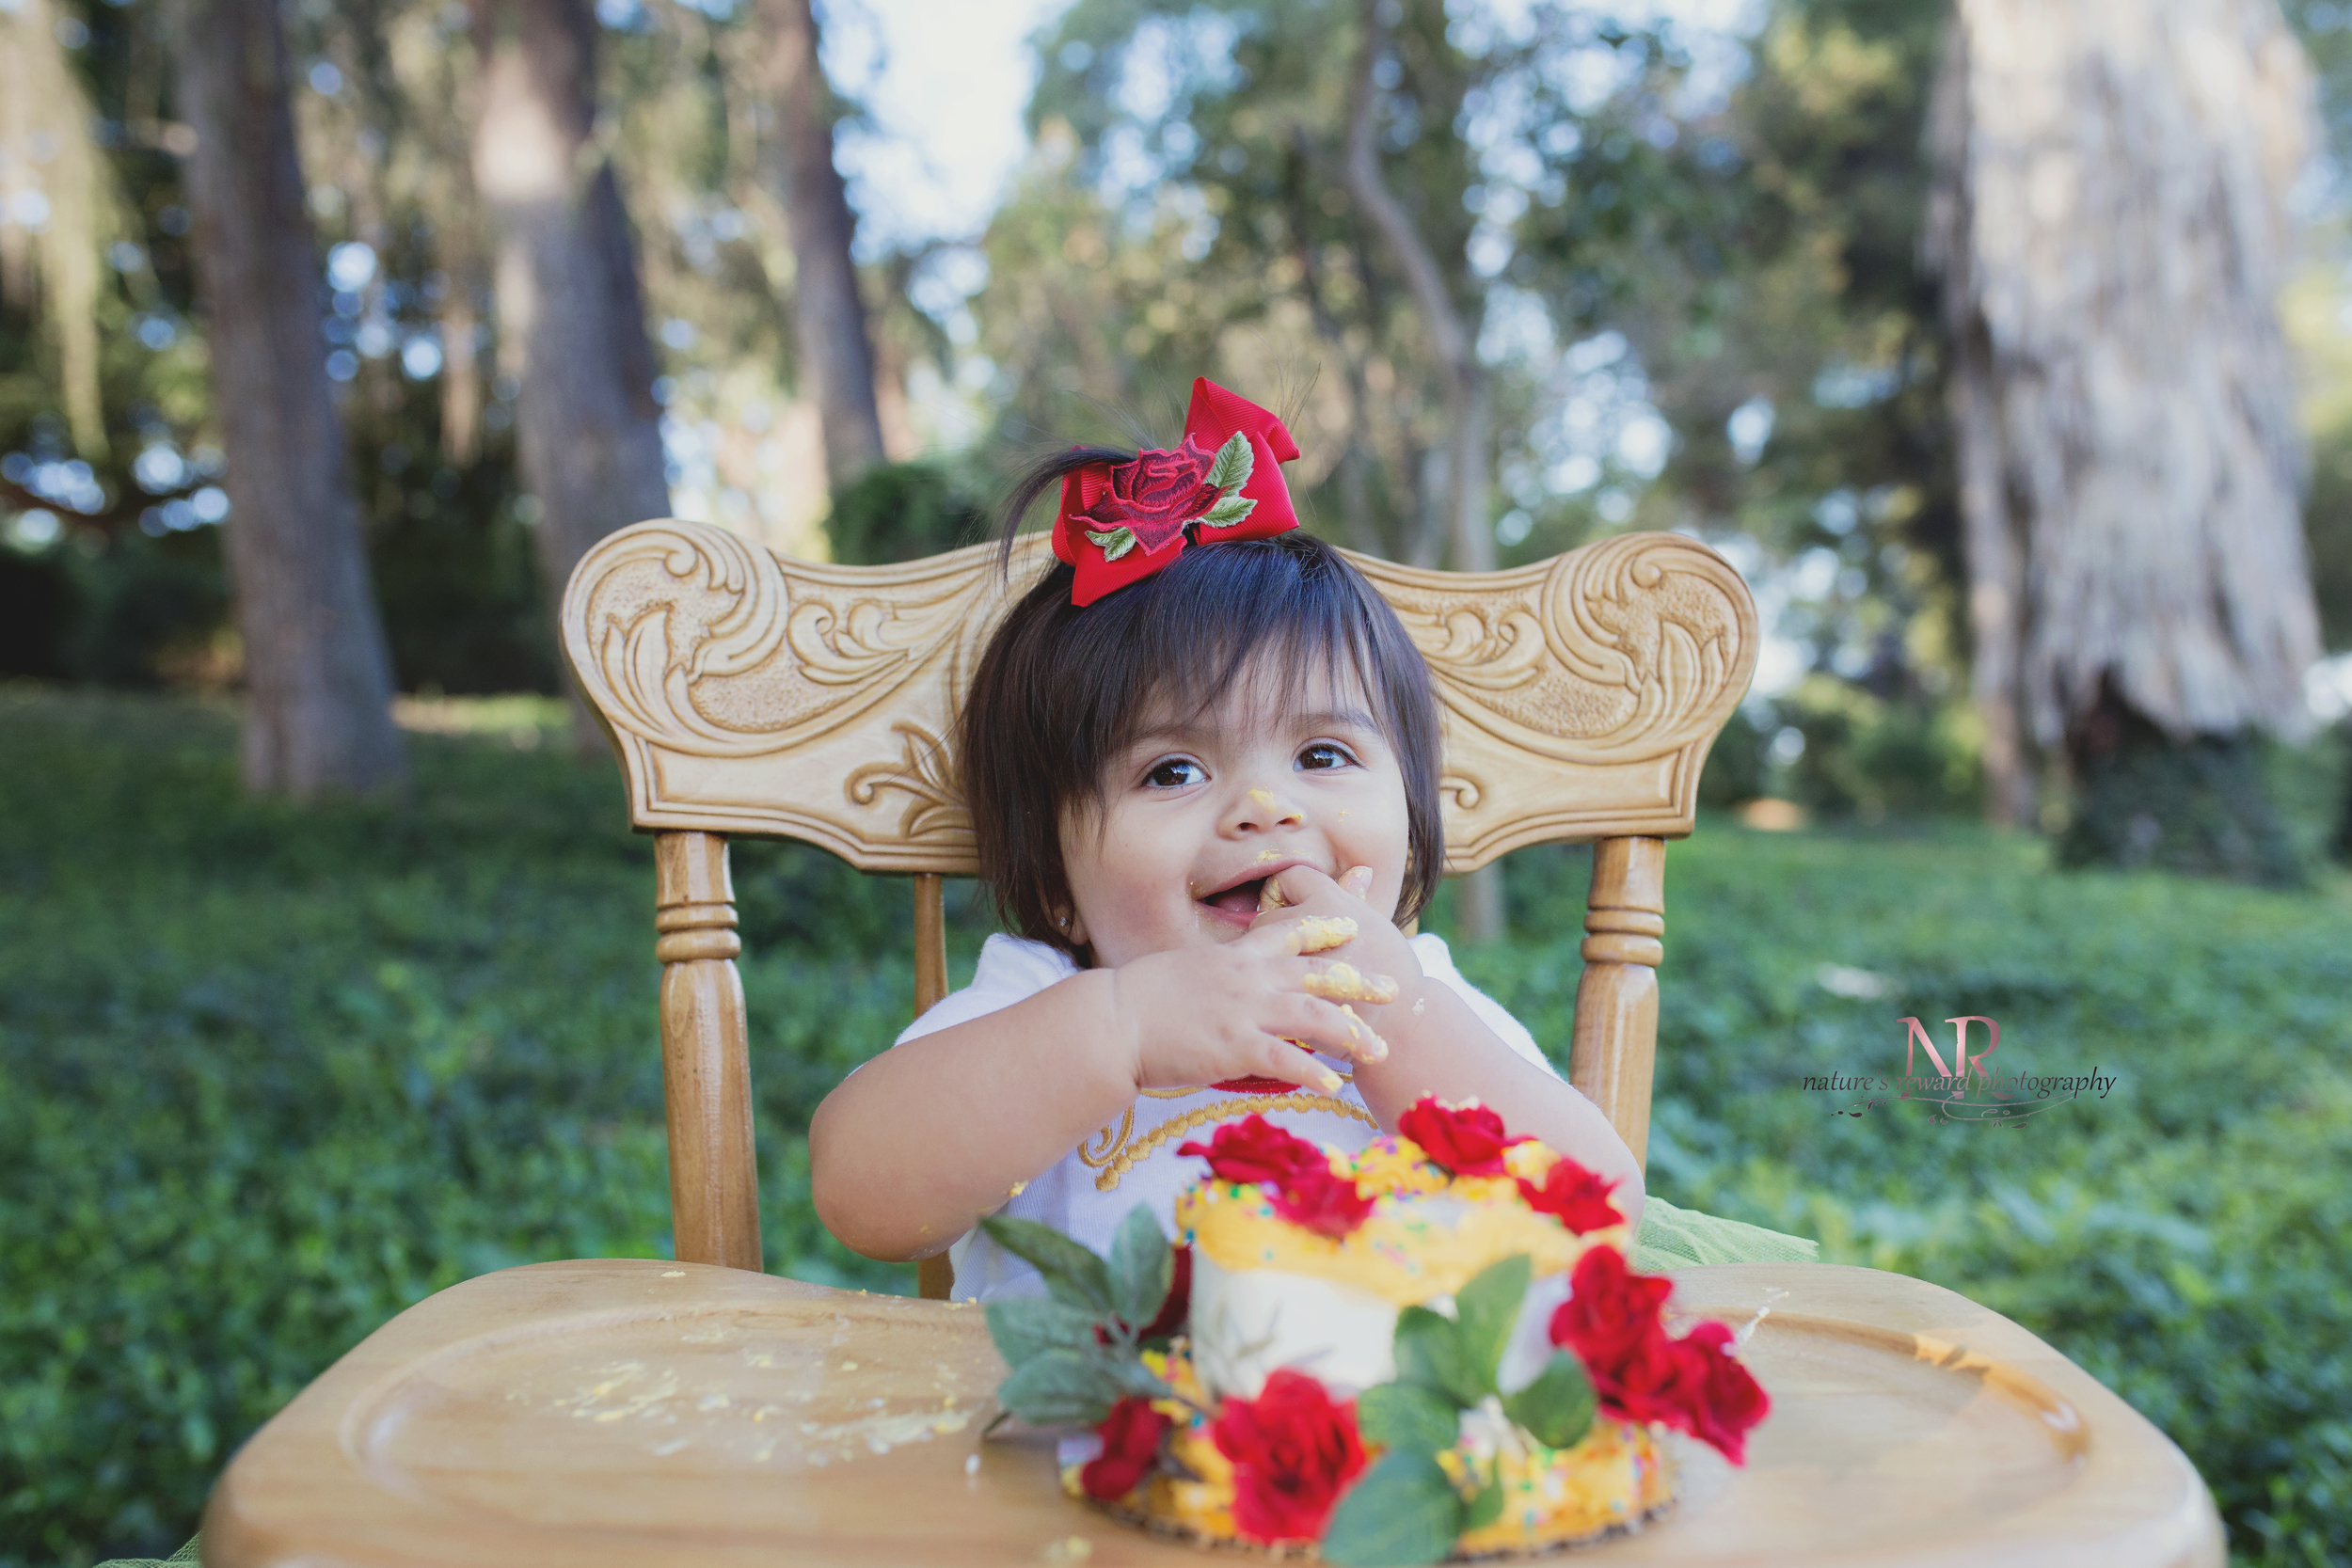 A big smile  for a gorgeous cake. She dug in during the cake smash part of this session